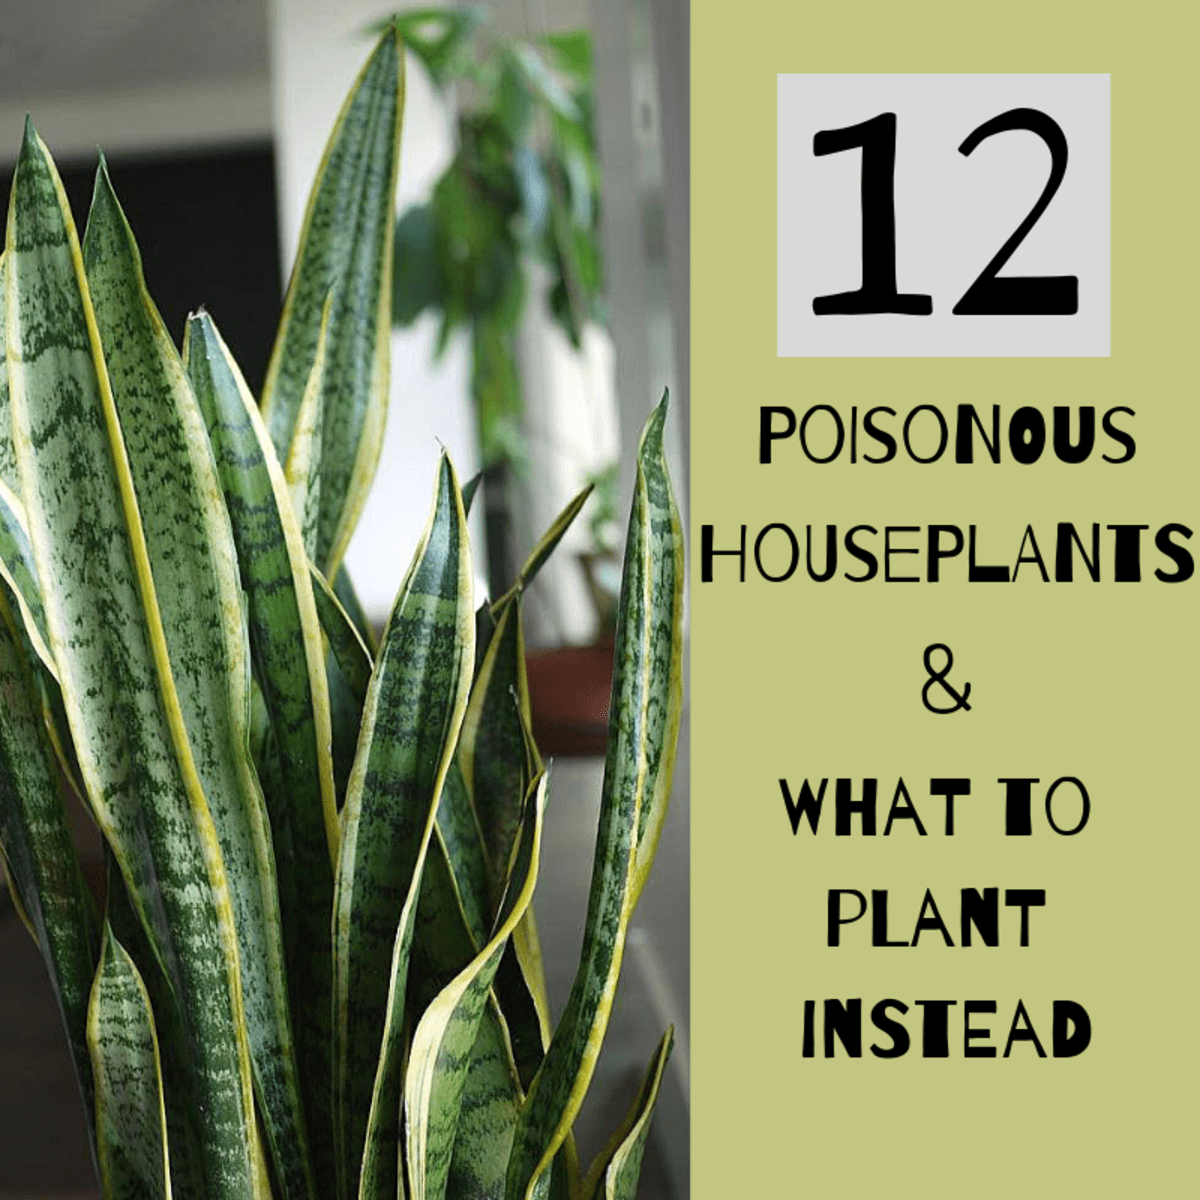 12 poisonous house plants